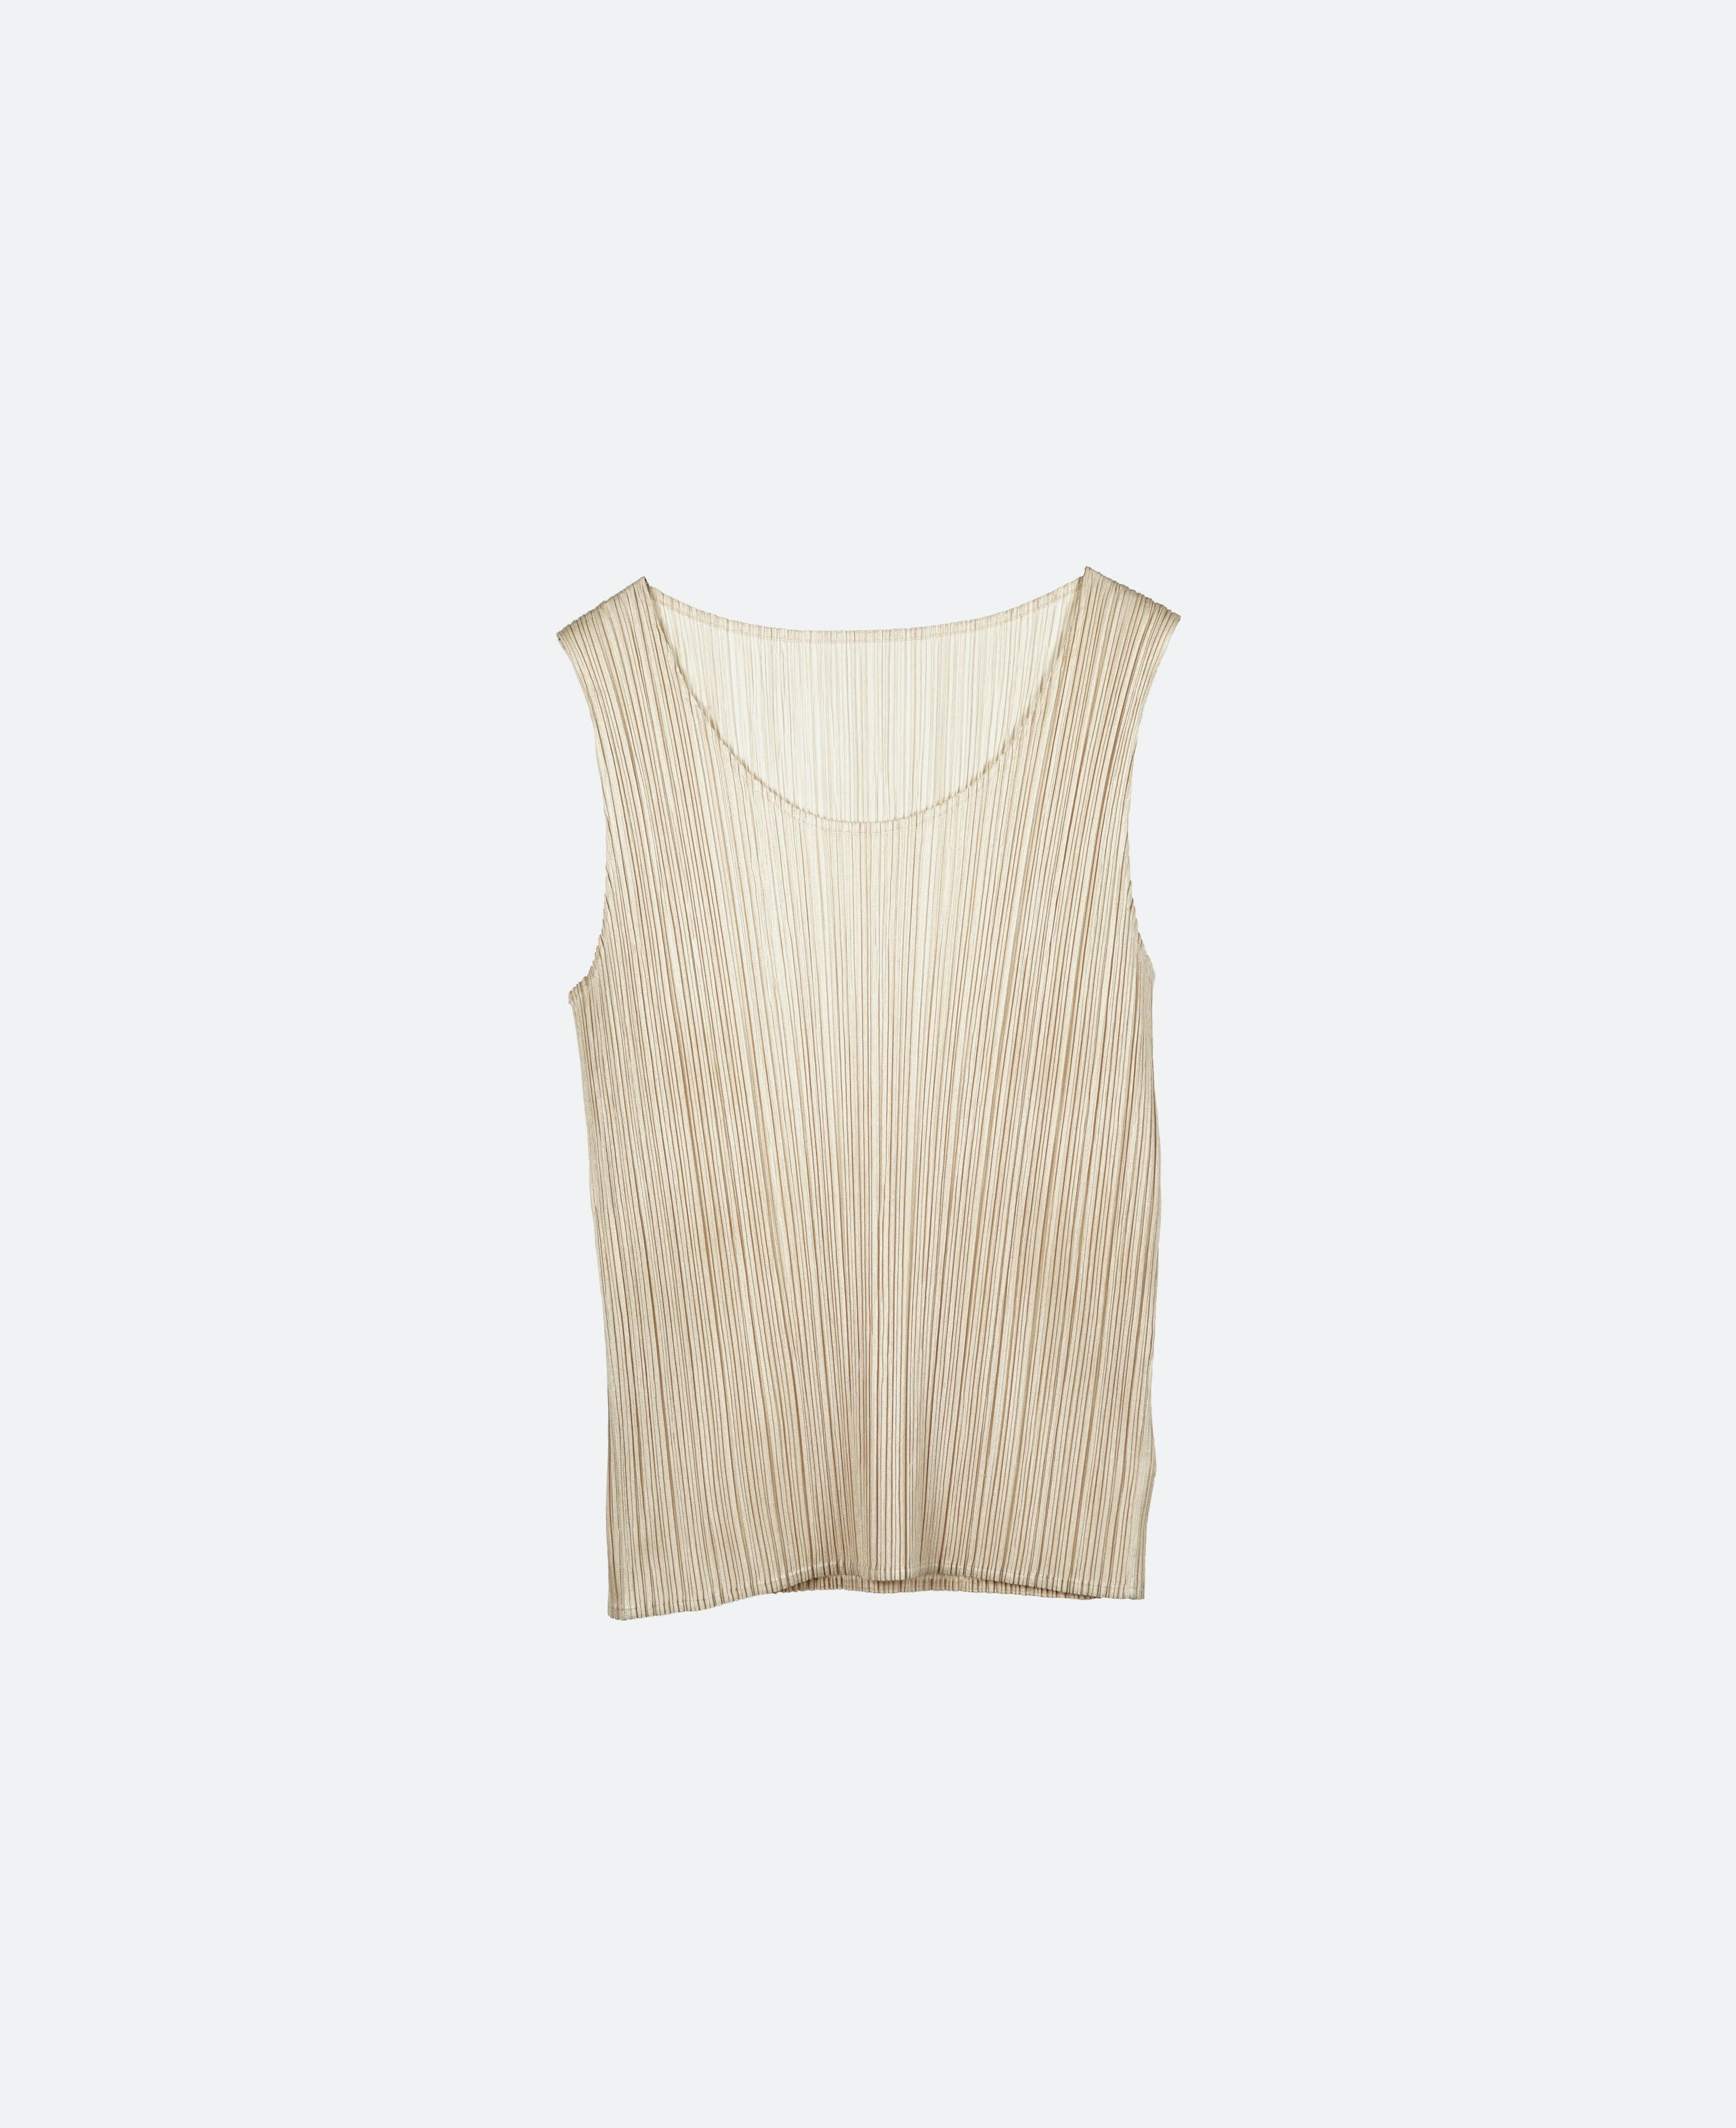 Issey Pleats Please No Sleeve Top